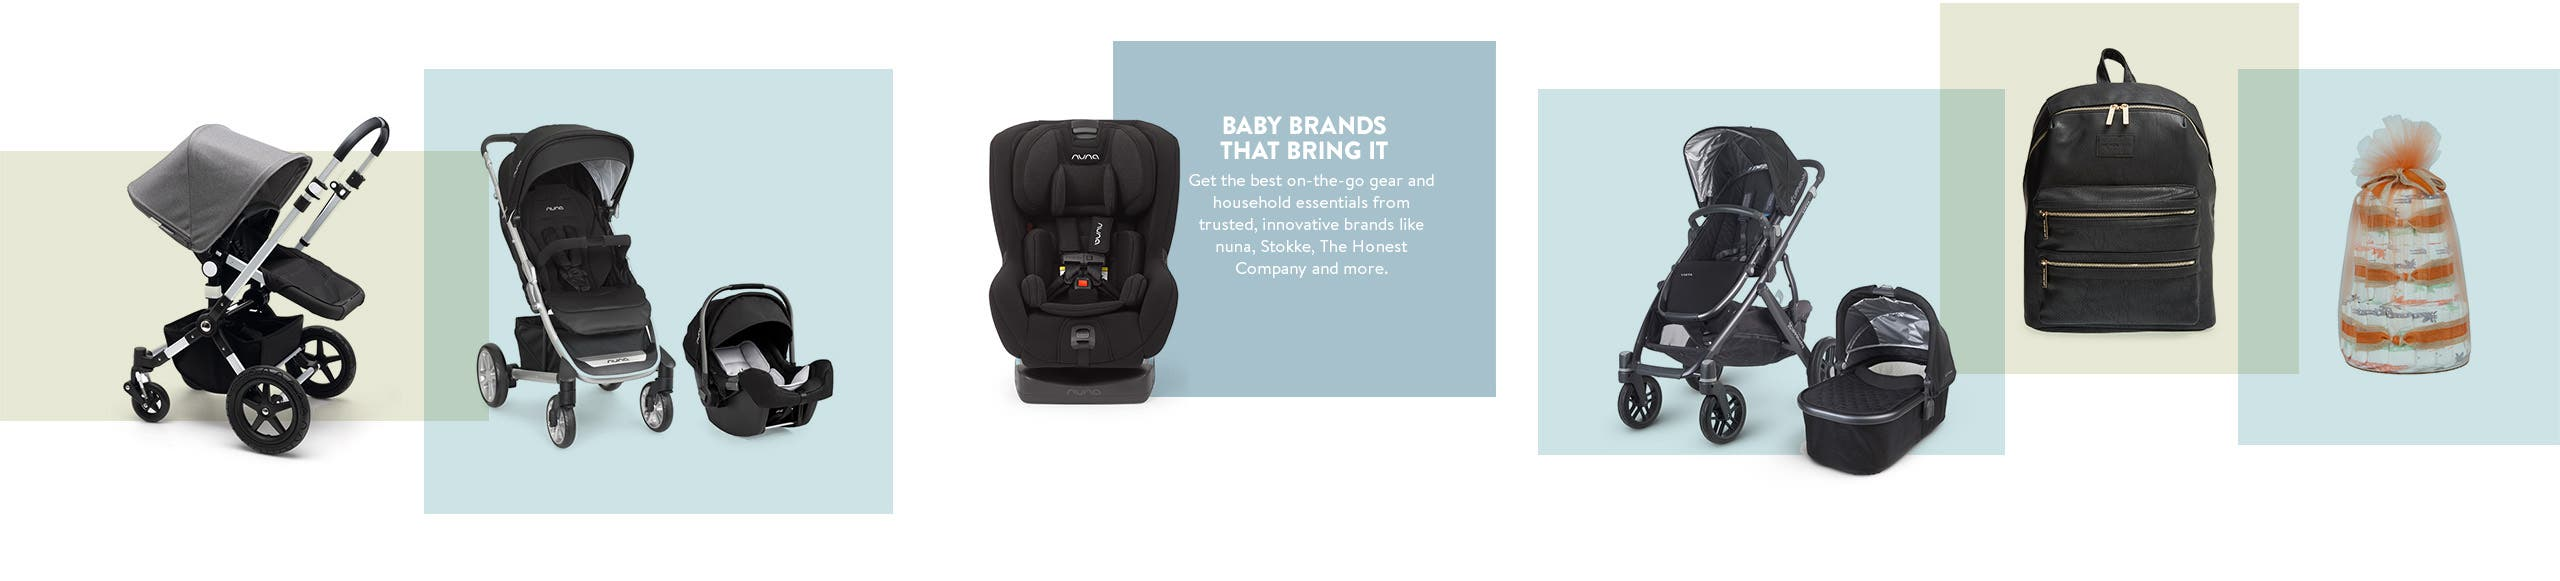 Baby brands that bring it. The best in baby gear and essentials at Nordstrom.